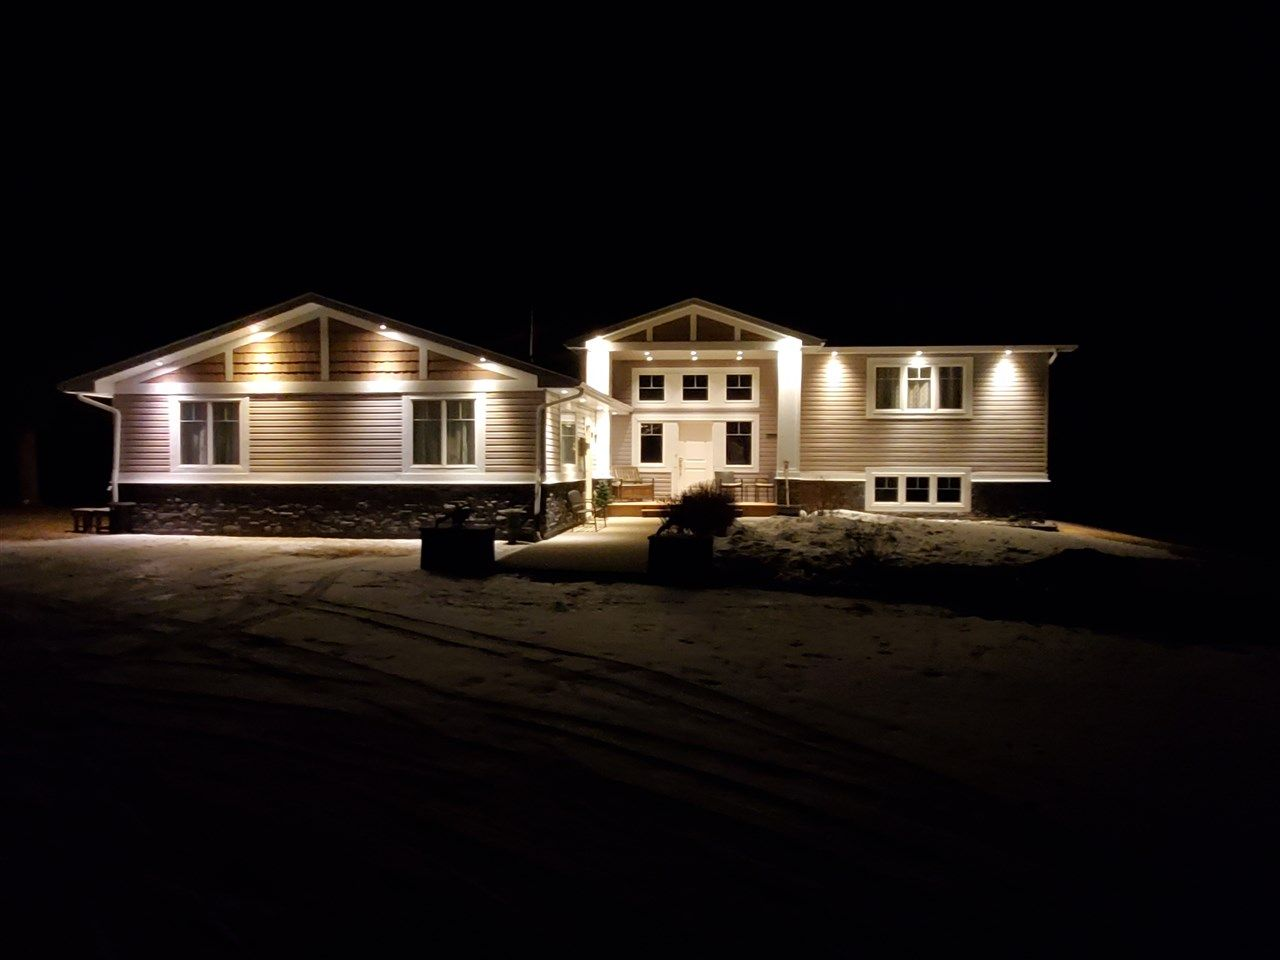 Main Photo: 5 52208 RGE RD 275: Rural Parkland County House for sale : MLS®# E4233819